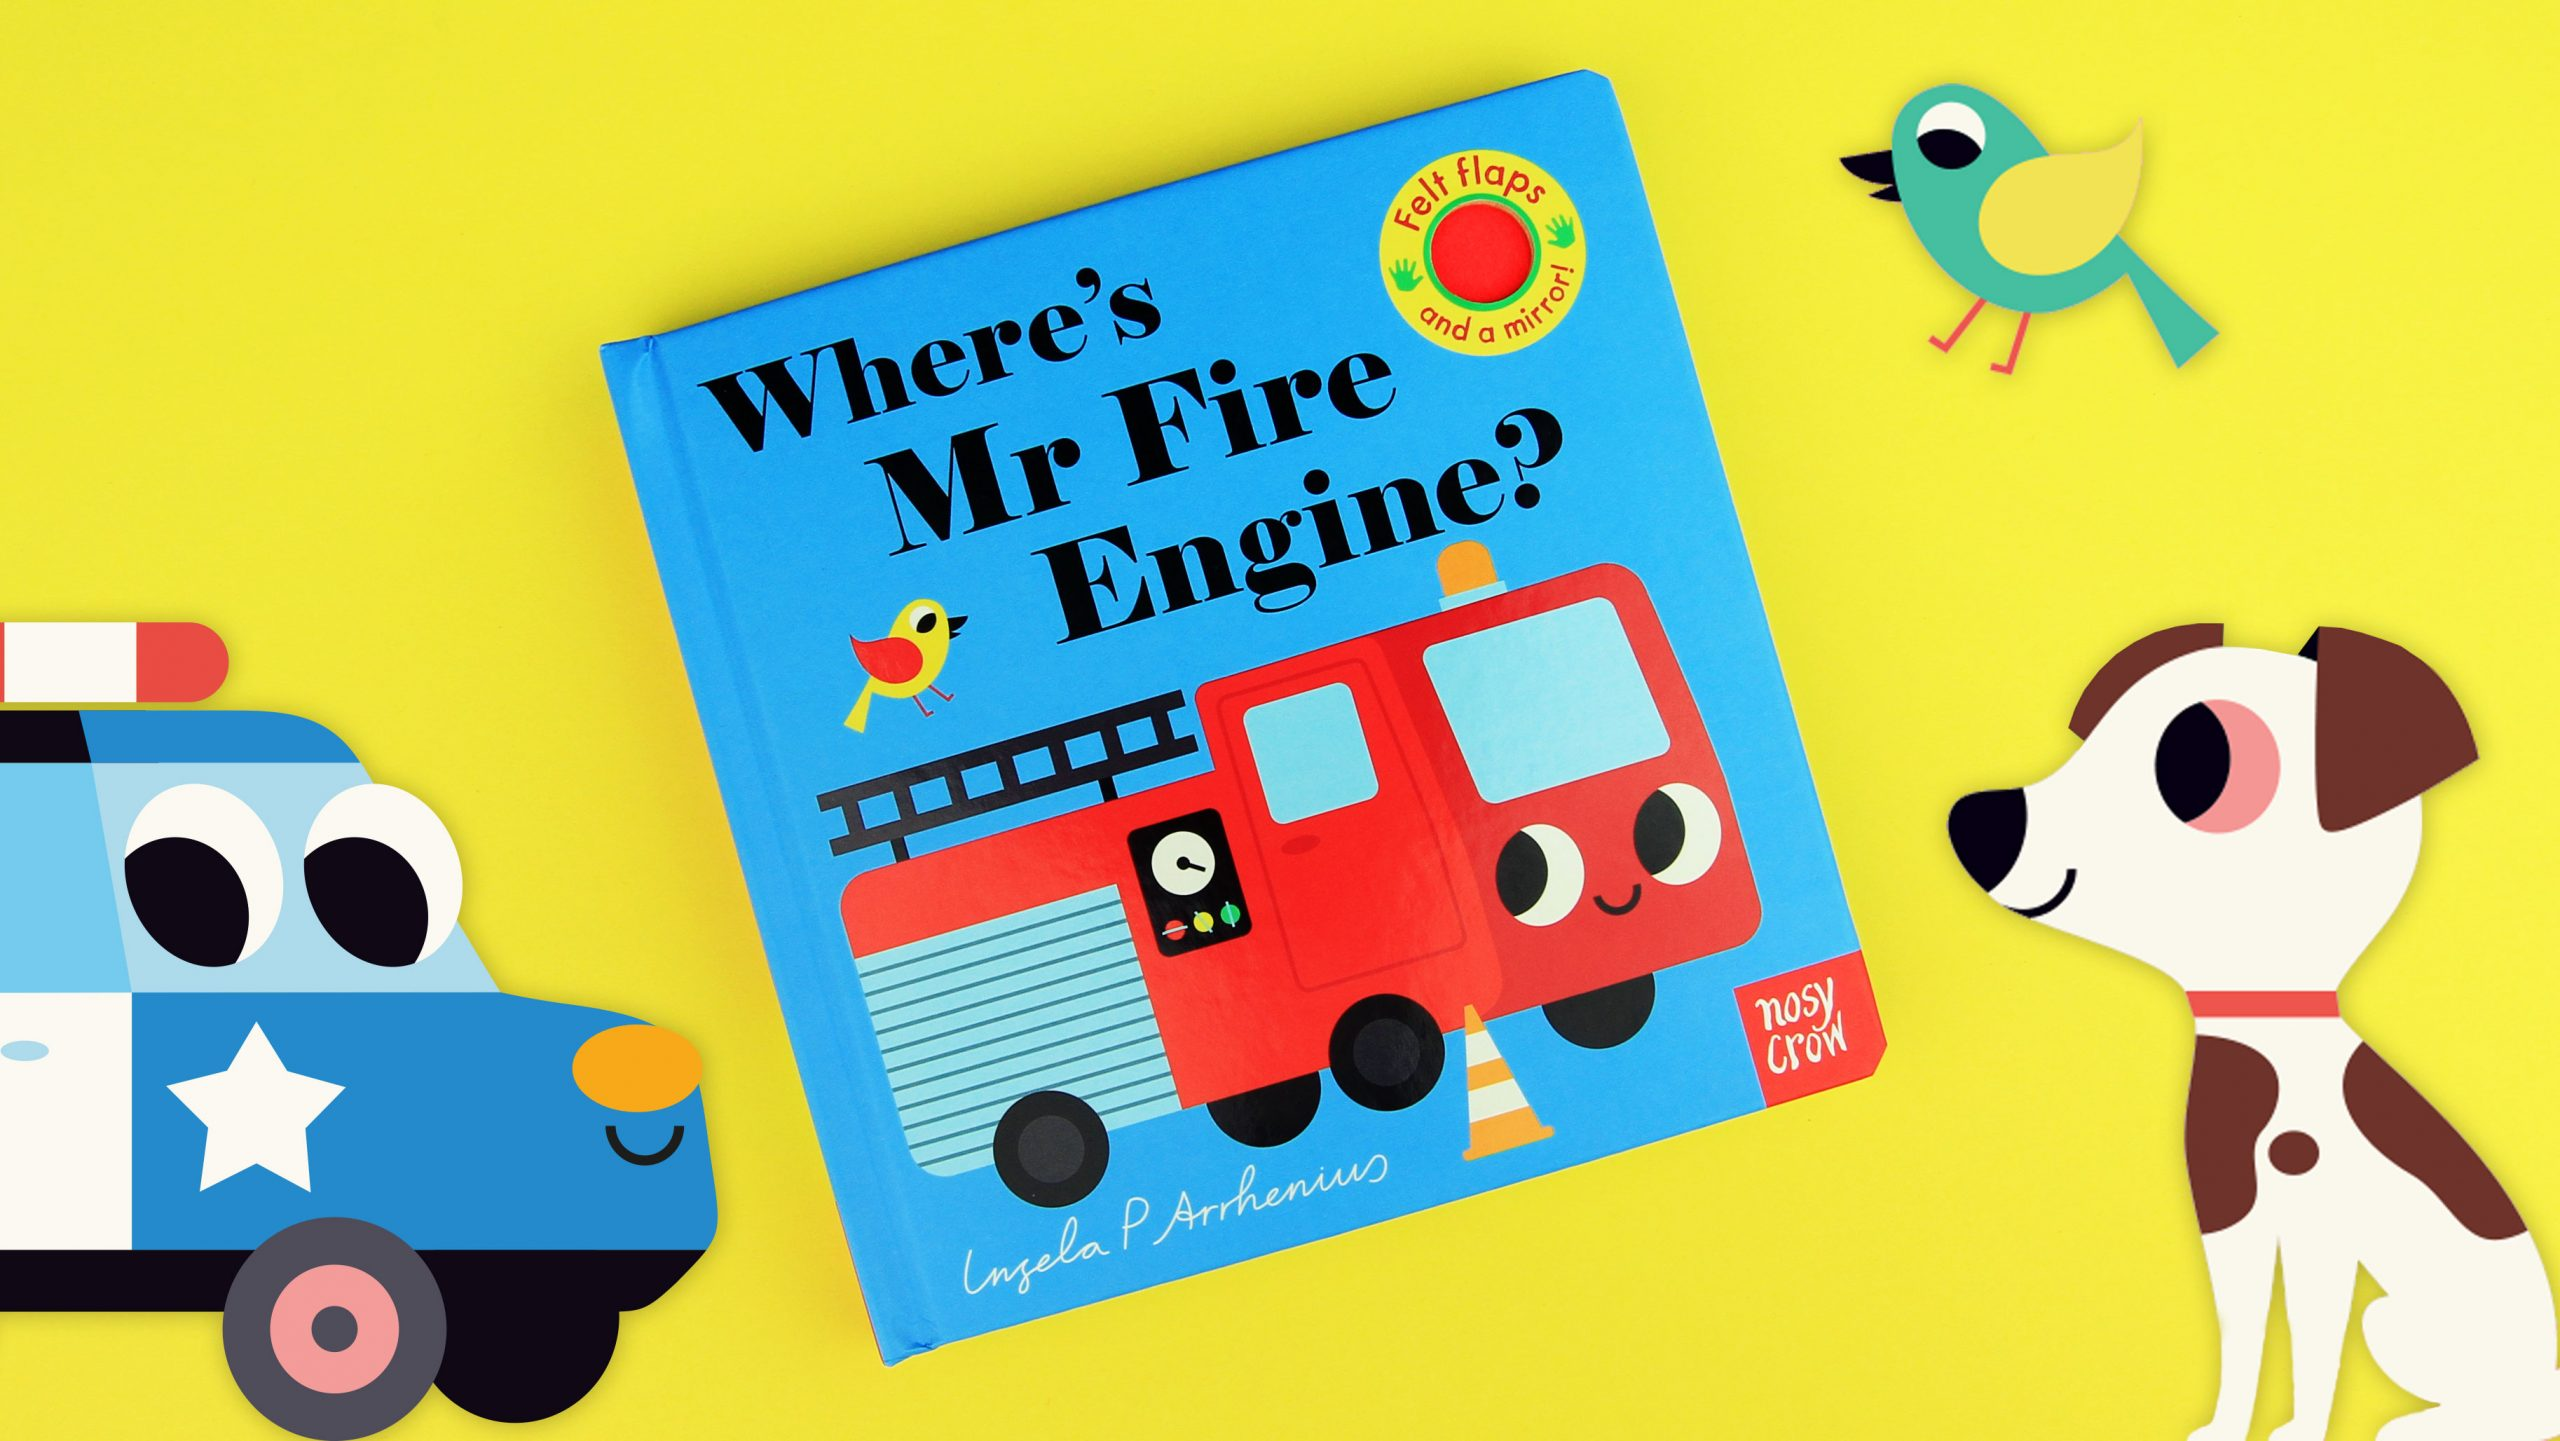 Where's Mr Fire Engine? from the Felt Flaps board book series by Ingela P Arrhenius